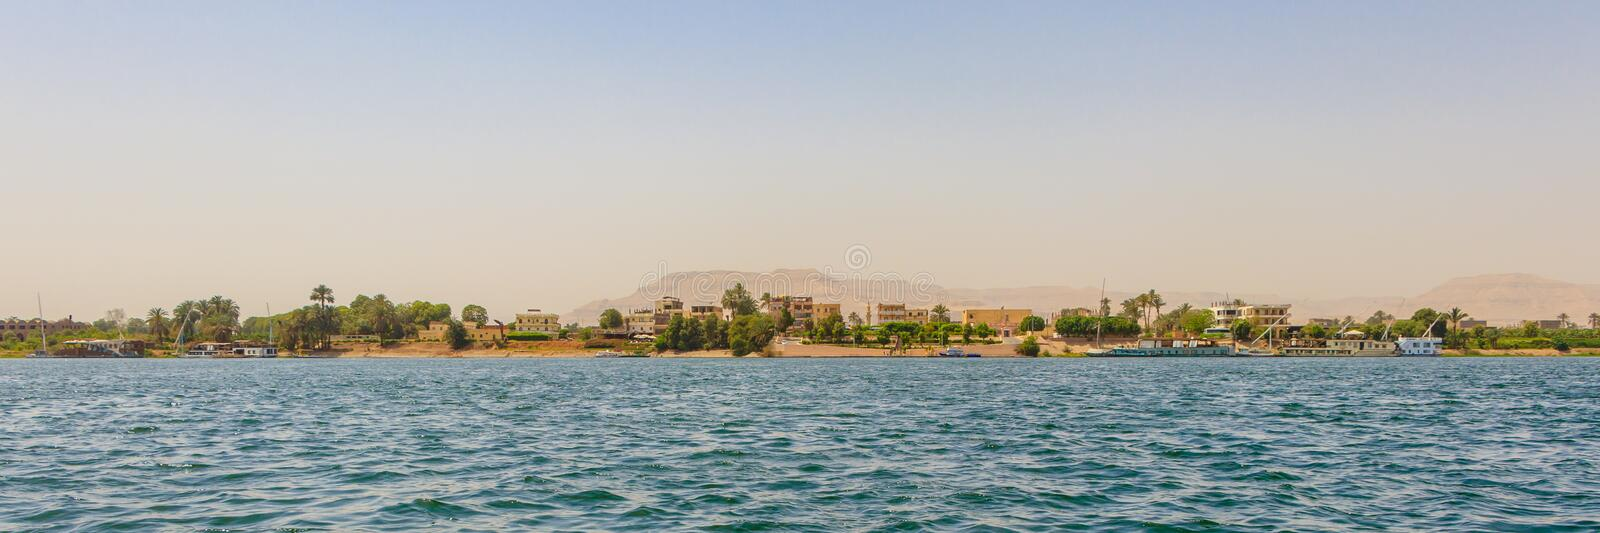 Residential buildings on the Nile river with sailboats in Luxor, Egypt. Nile River is the longest river in the world, called the father of African rivers. It stock photography